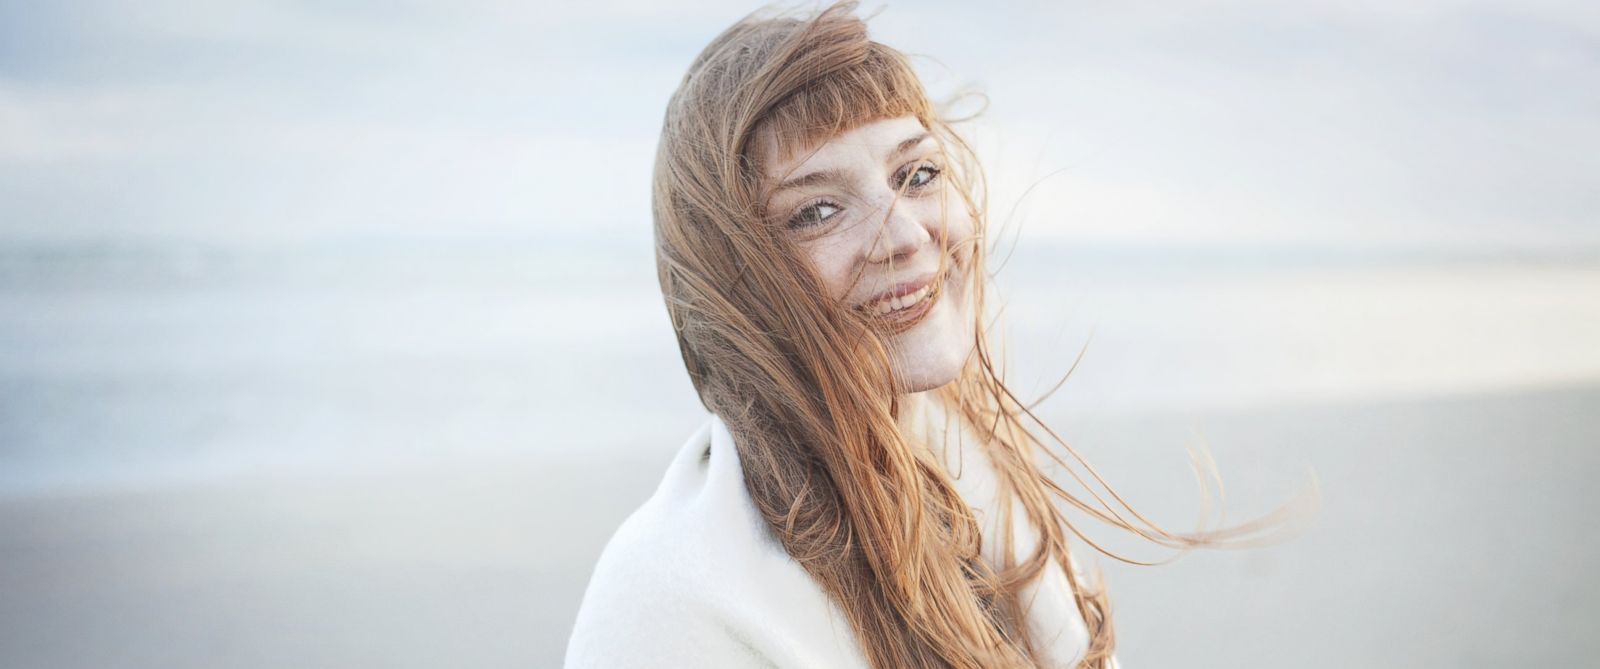 PHOTO: In this stock image, a woman with windswept hair is pictured.